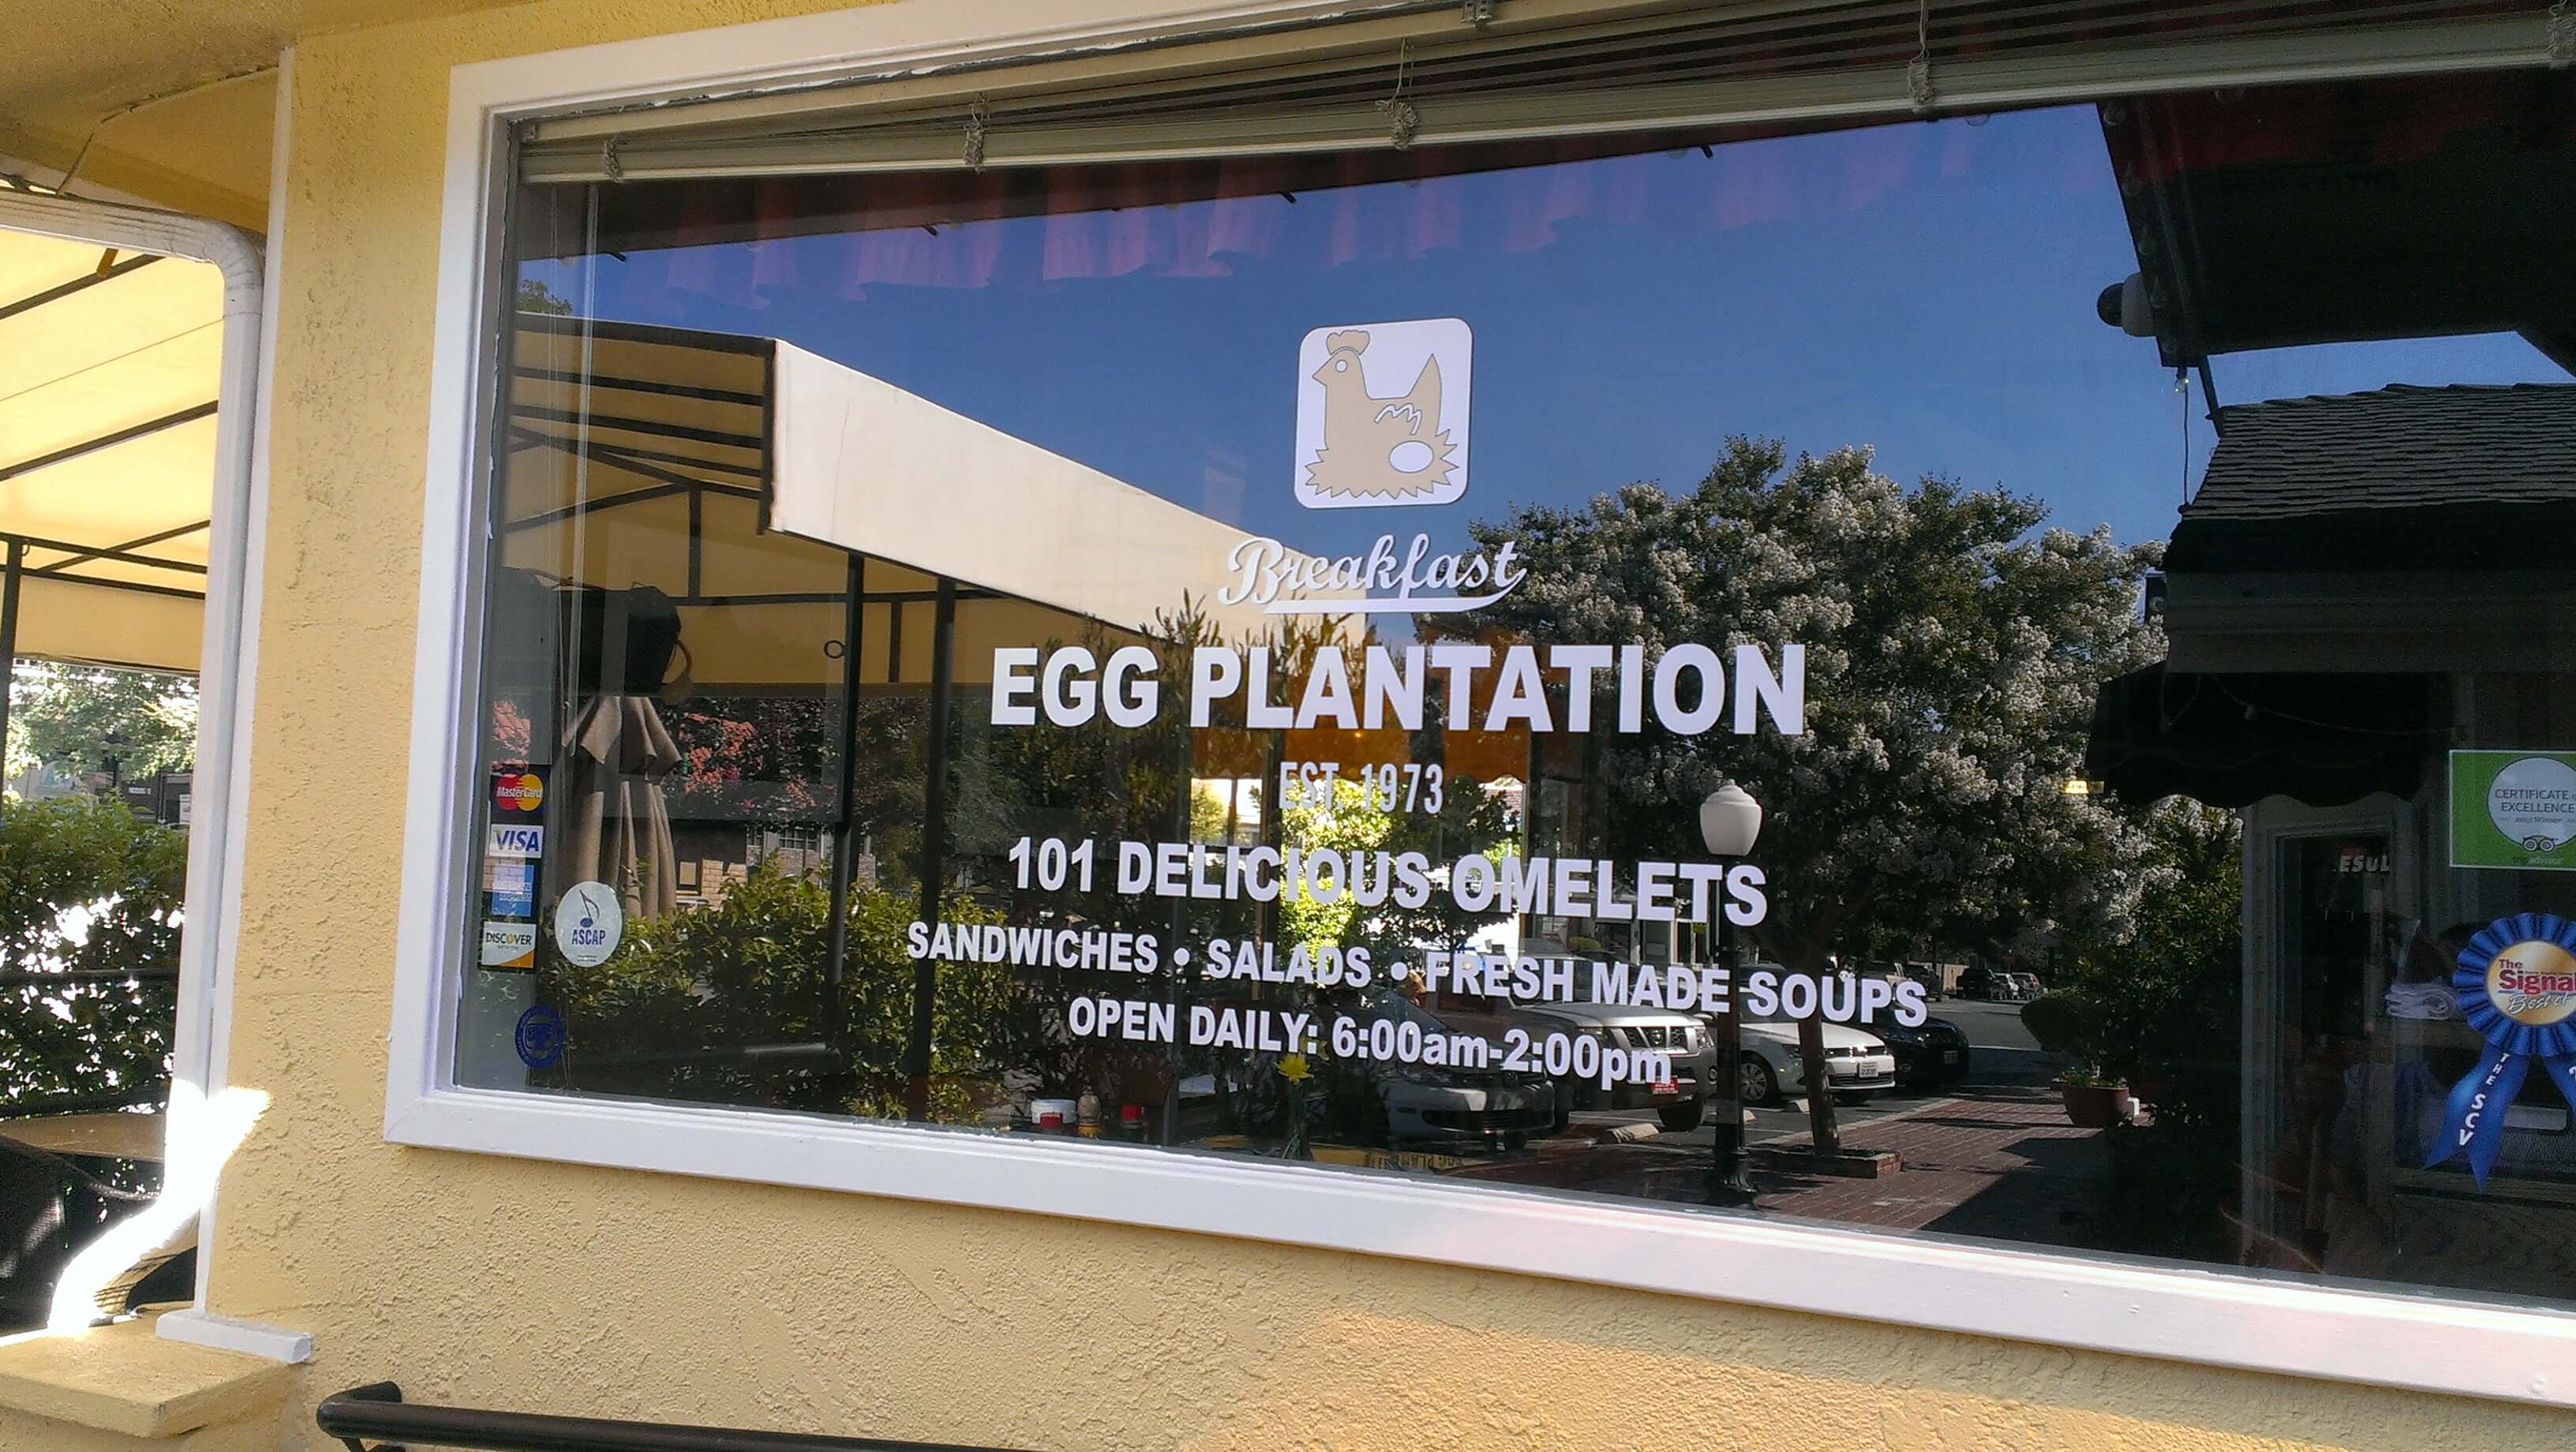 The Egg Plantation is a great breakfast restaurant in Newhall